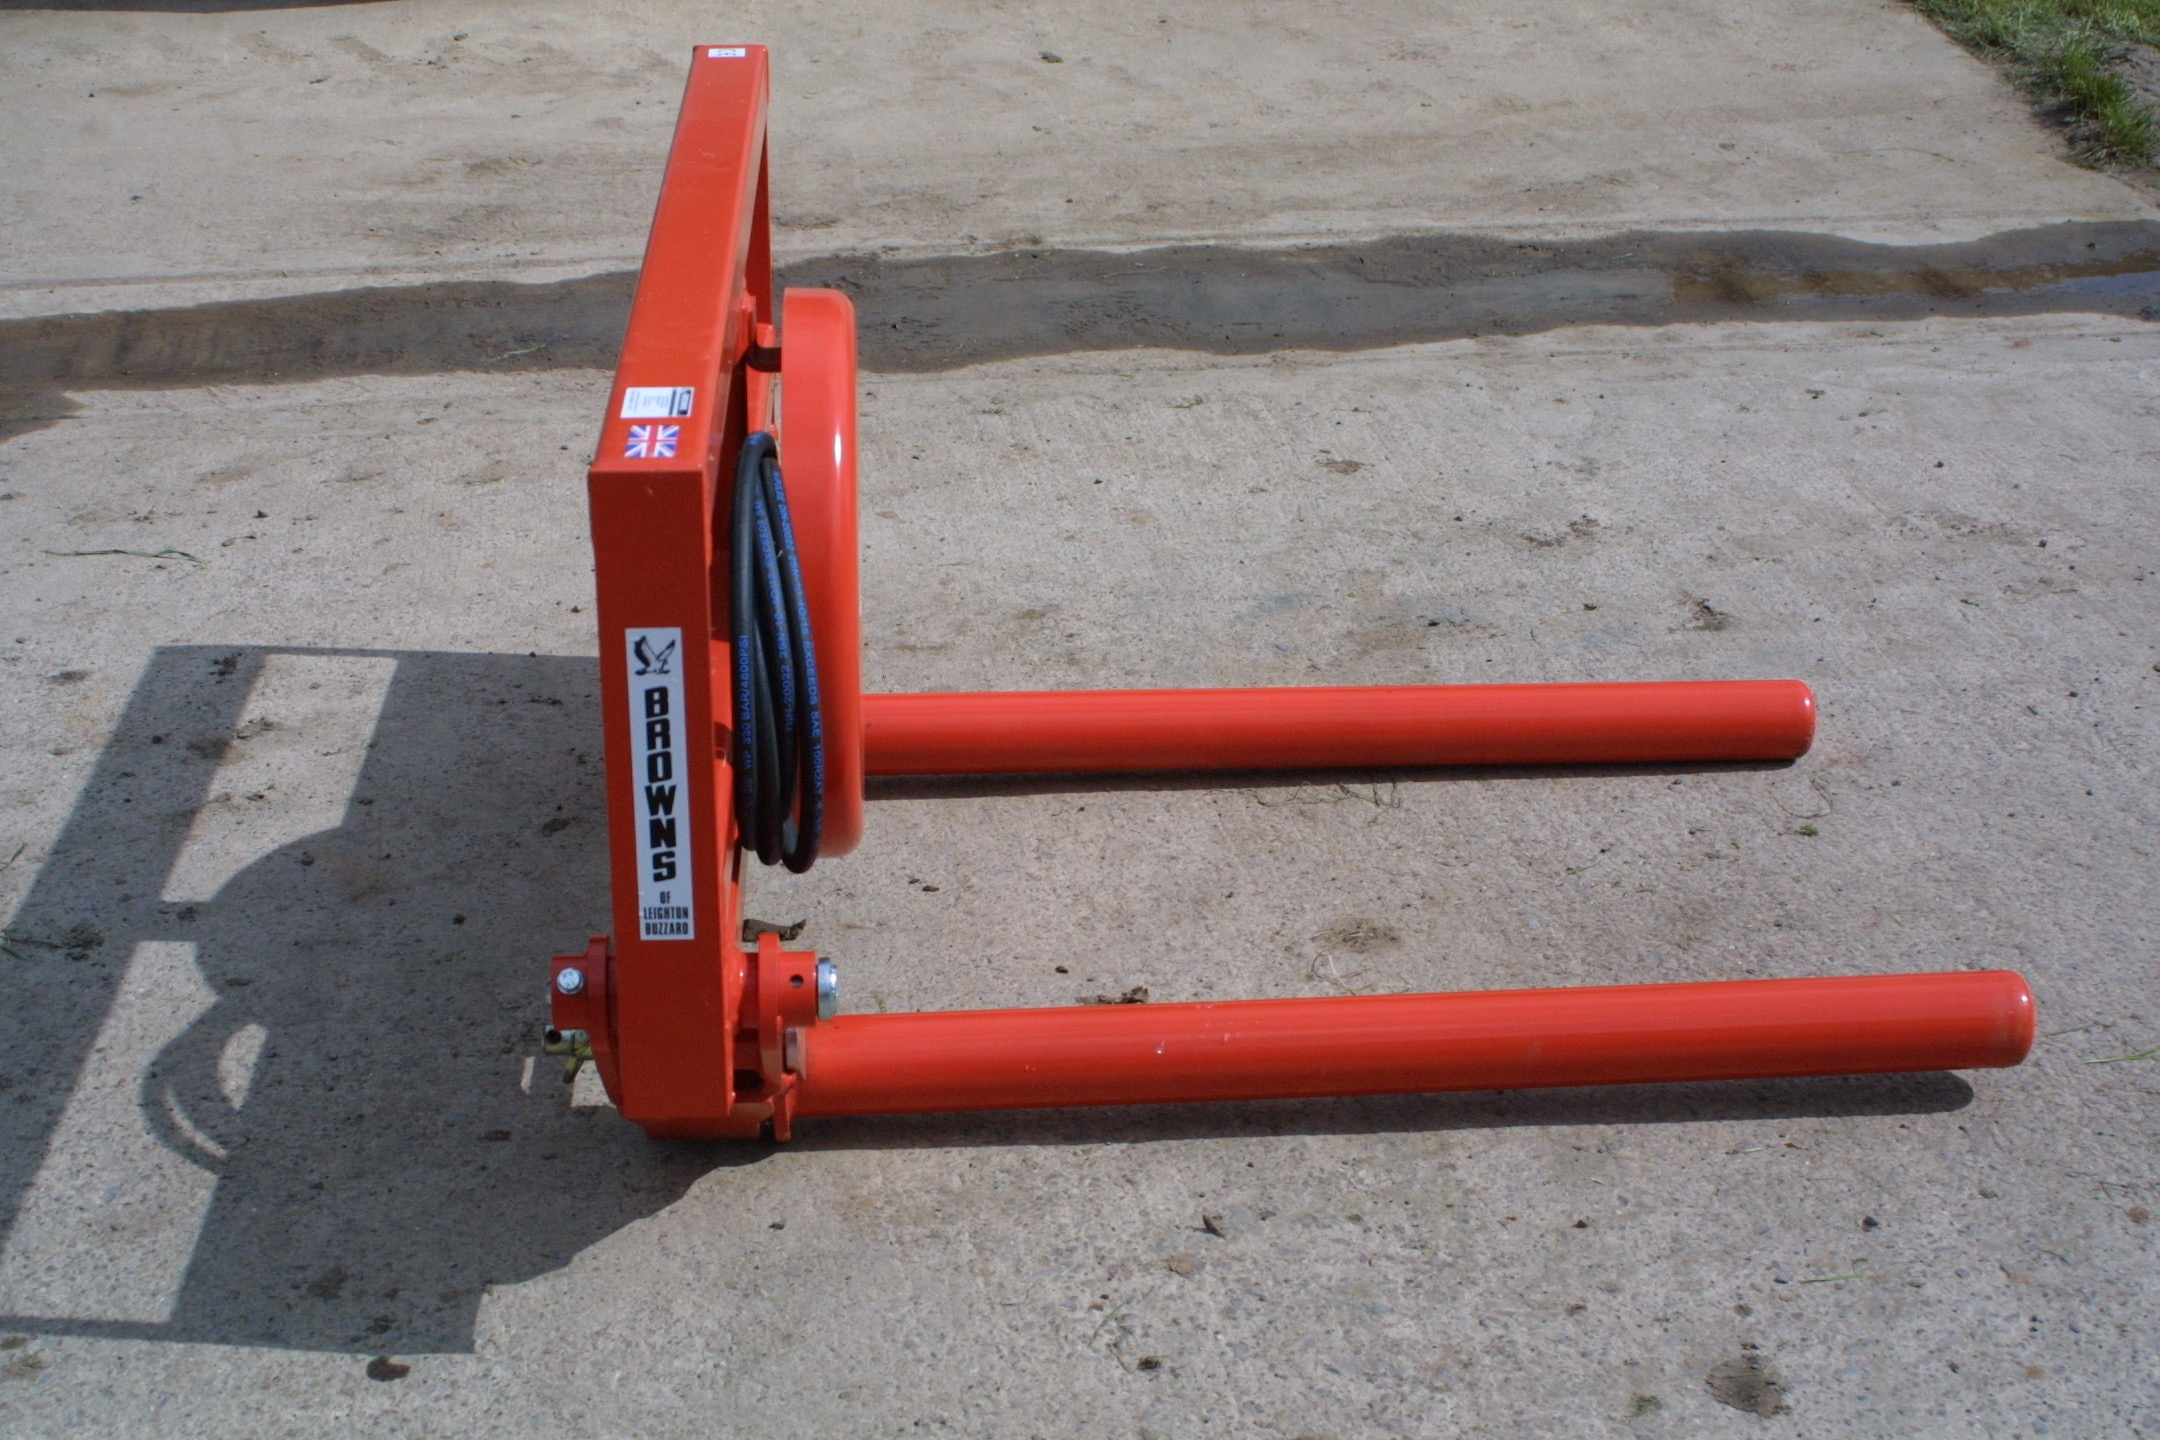 c/w removable rollers and hydraulic hoses